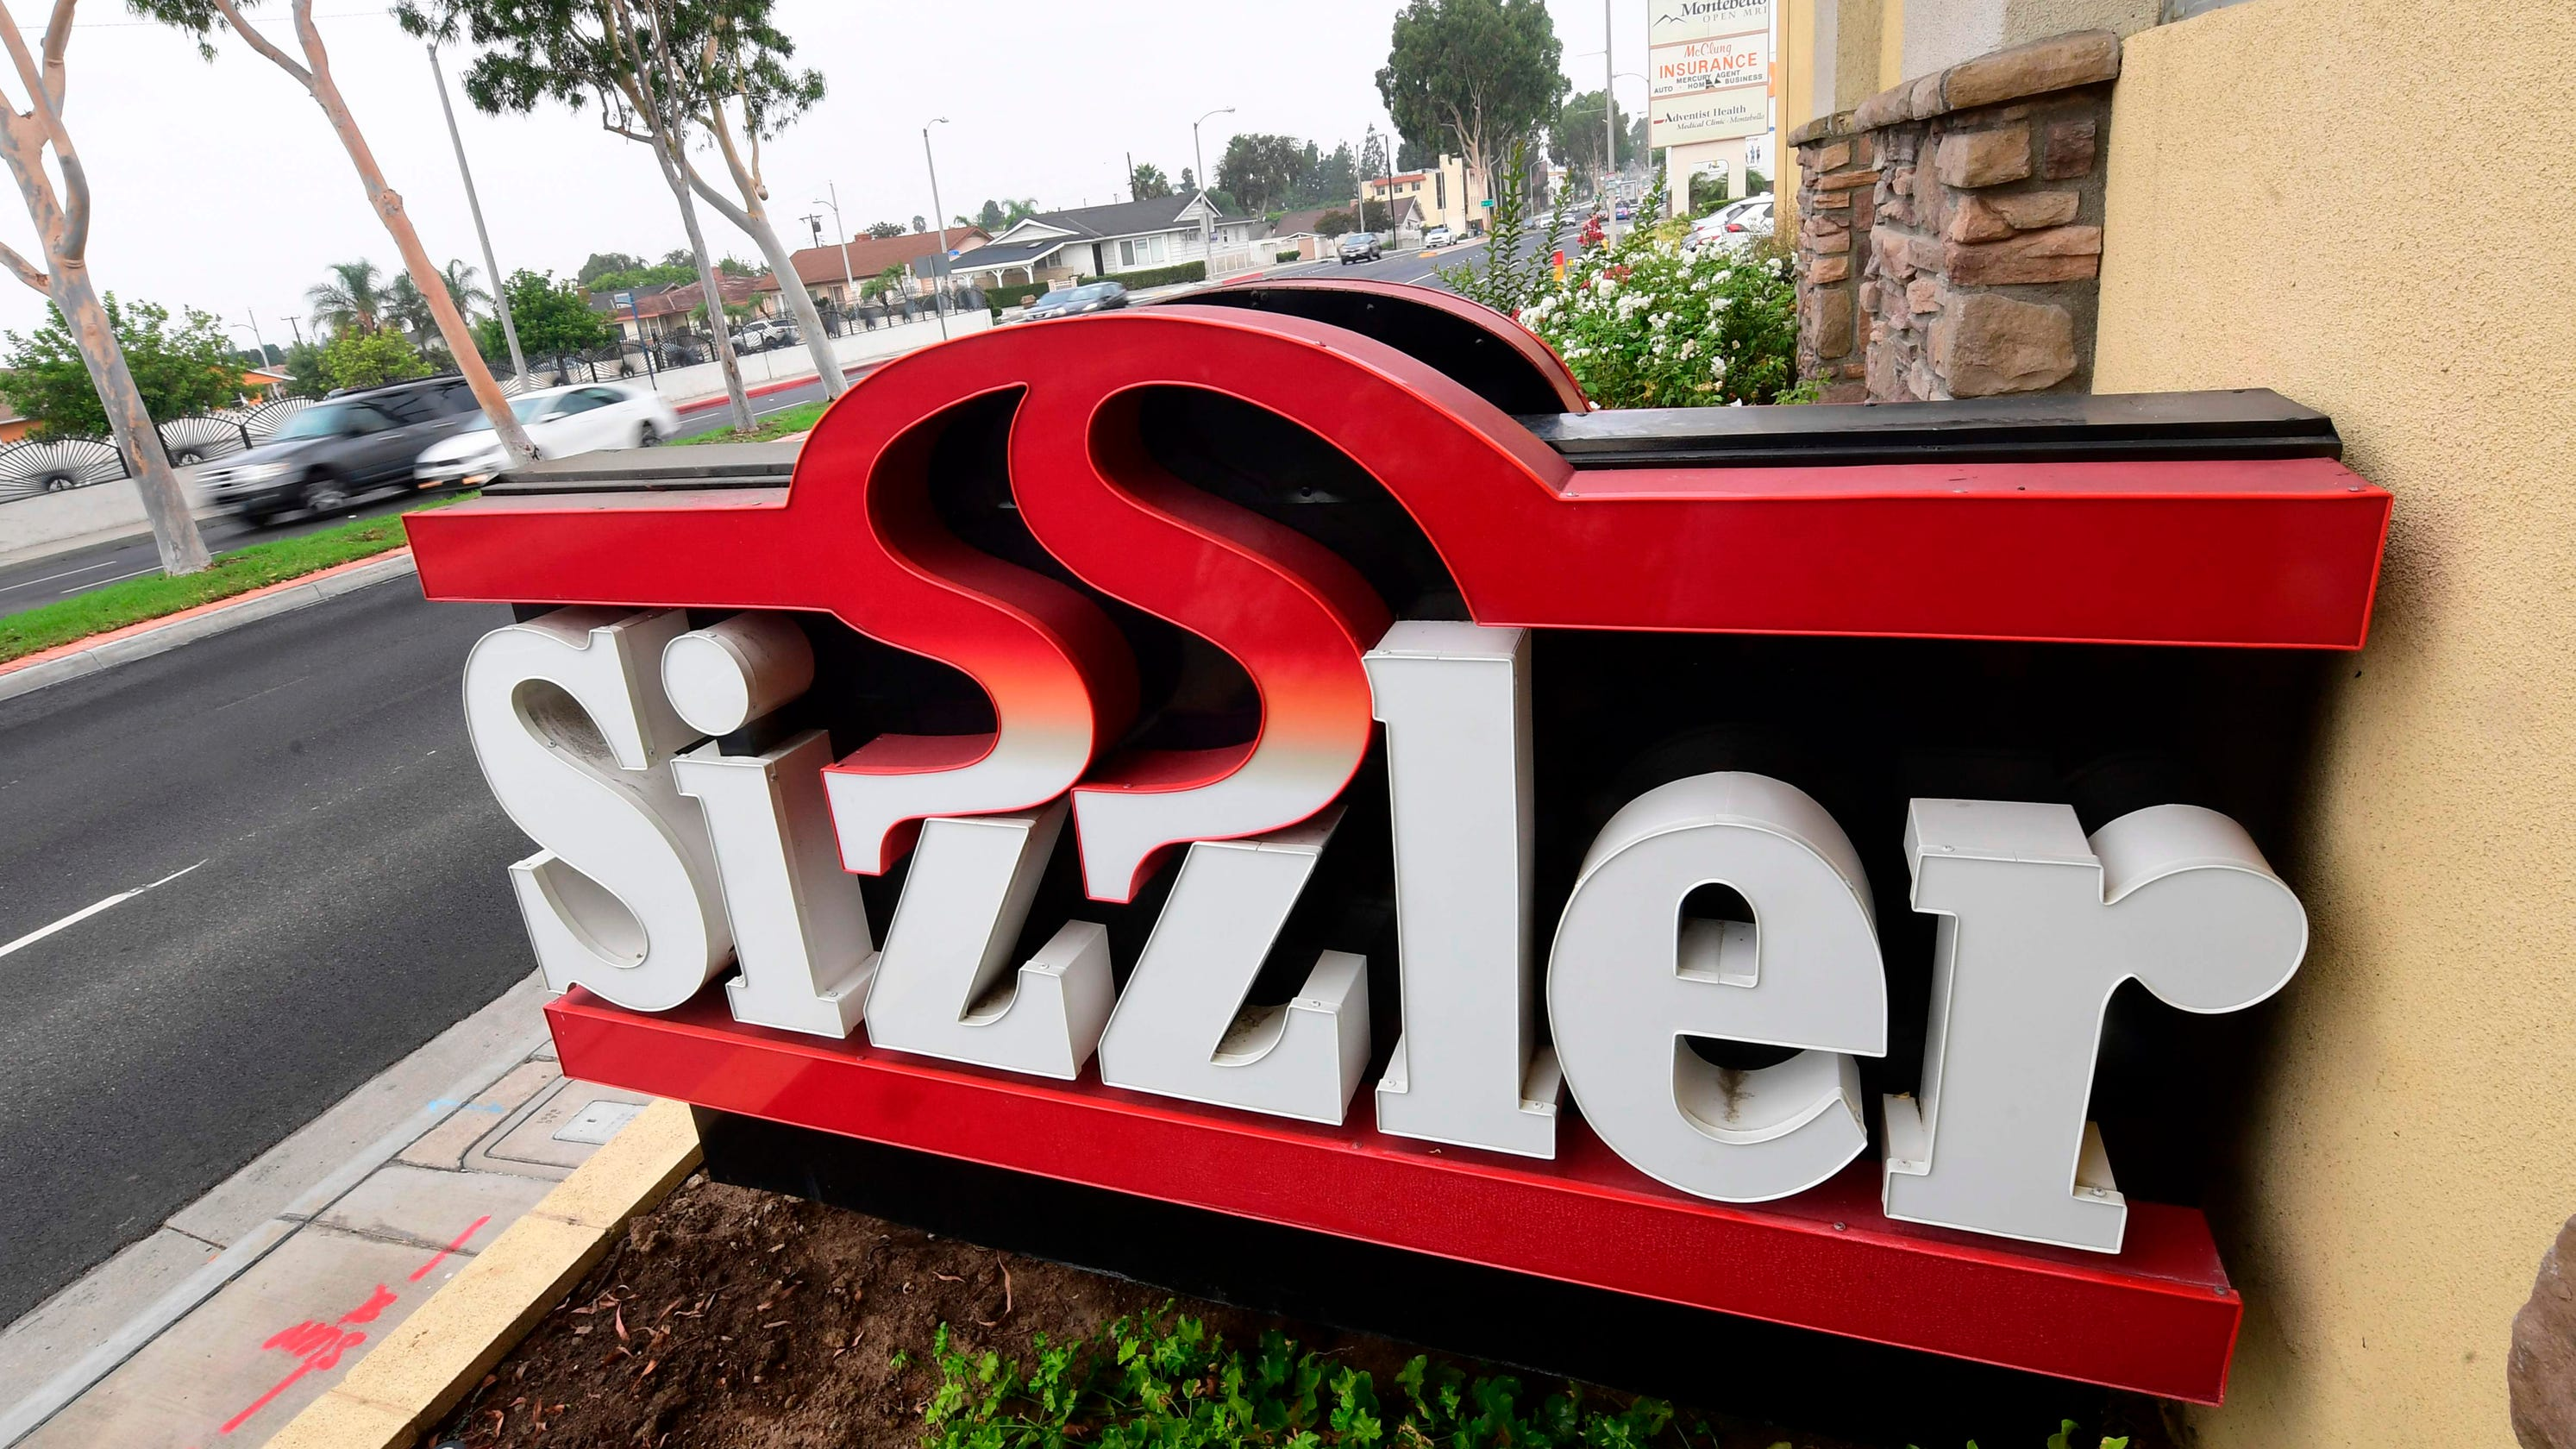 Restaurant chain Sizzler files for Chapter 11 bankruptcy, citing impact of COVID-19 pandemic